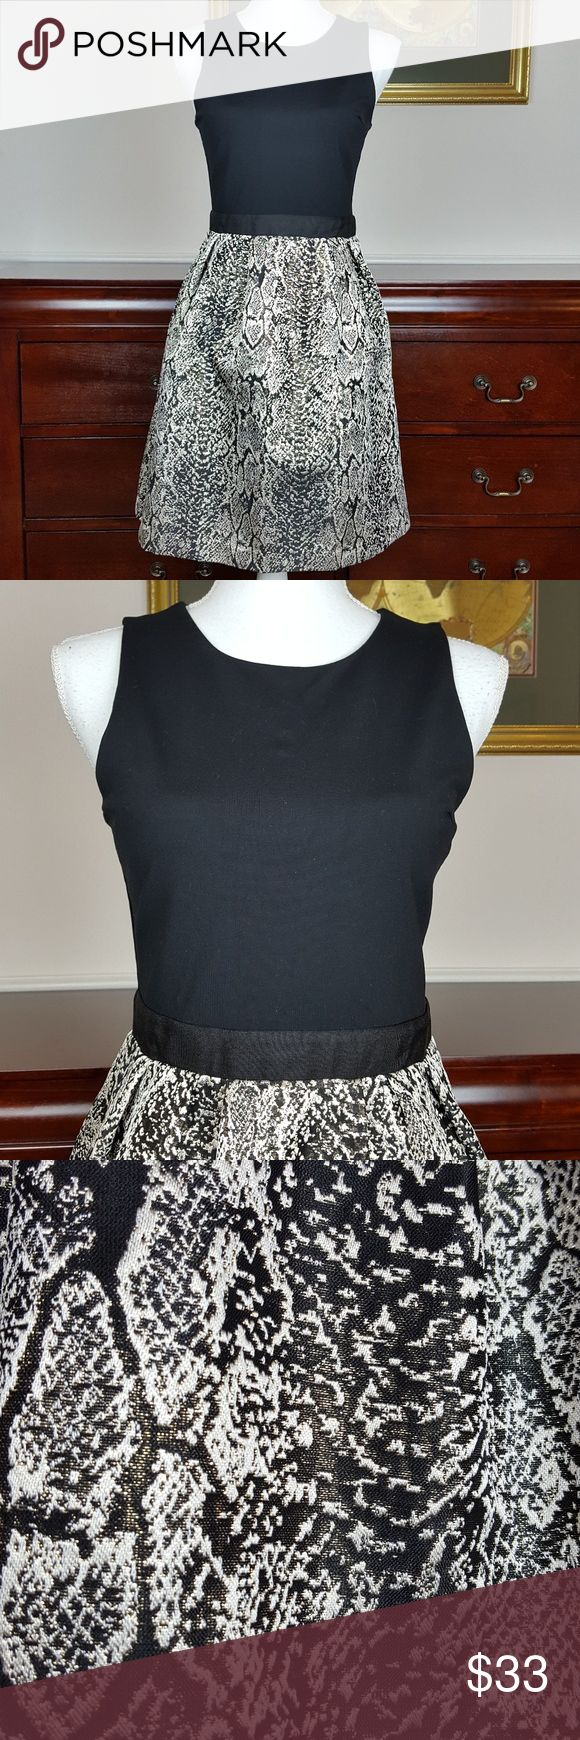 """Donna Ricco Tank Dress with Metallic Skirt Size S Great party dress. Black tank over black and gold metallic skirt. Grosgrain waistband. Back zip. Lined. Size Small. Excellent Condition. Approximate Measurements: Armpit to Armpit 16"""" Waist 14"""" Across Flat  Hip 17"""" Across Flat  Length 35"""" Donna Ricco Dresses"""